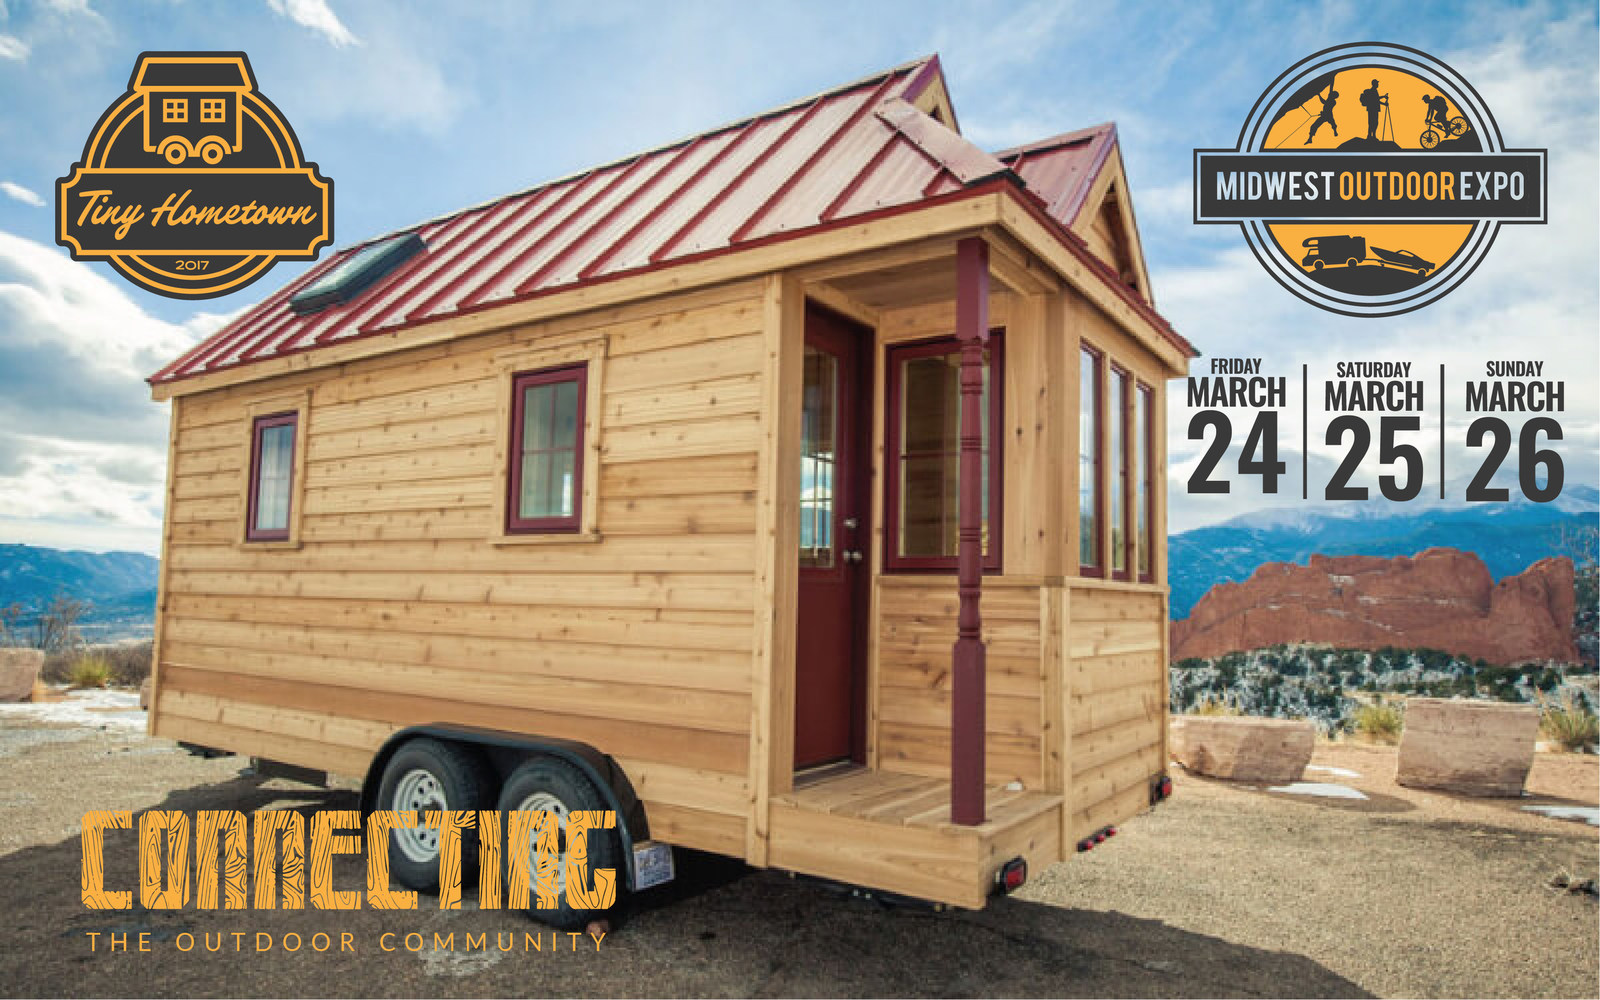 Largest Tiny House 30 tiny house on wheels for family of Largest Tiny Home Exhibit In The Midwest Coming To Indianapolis